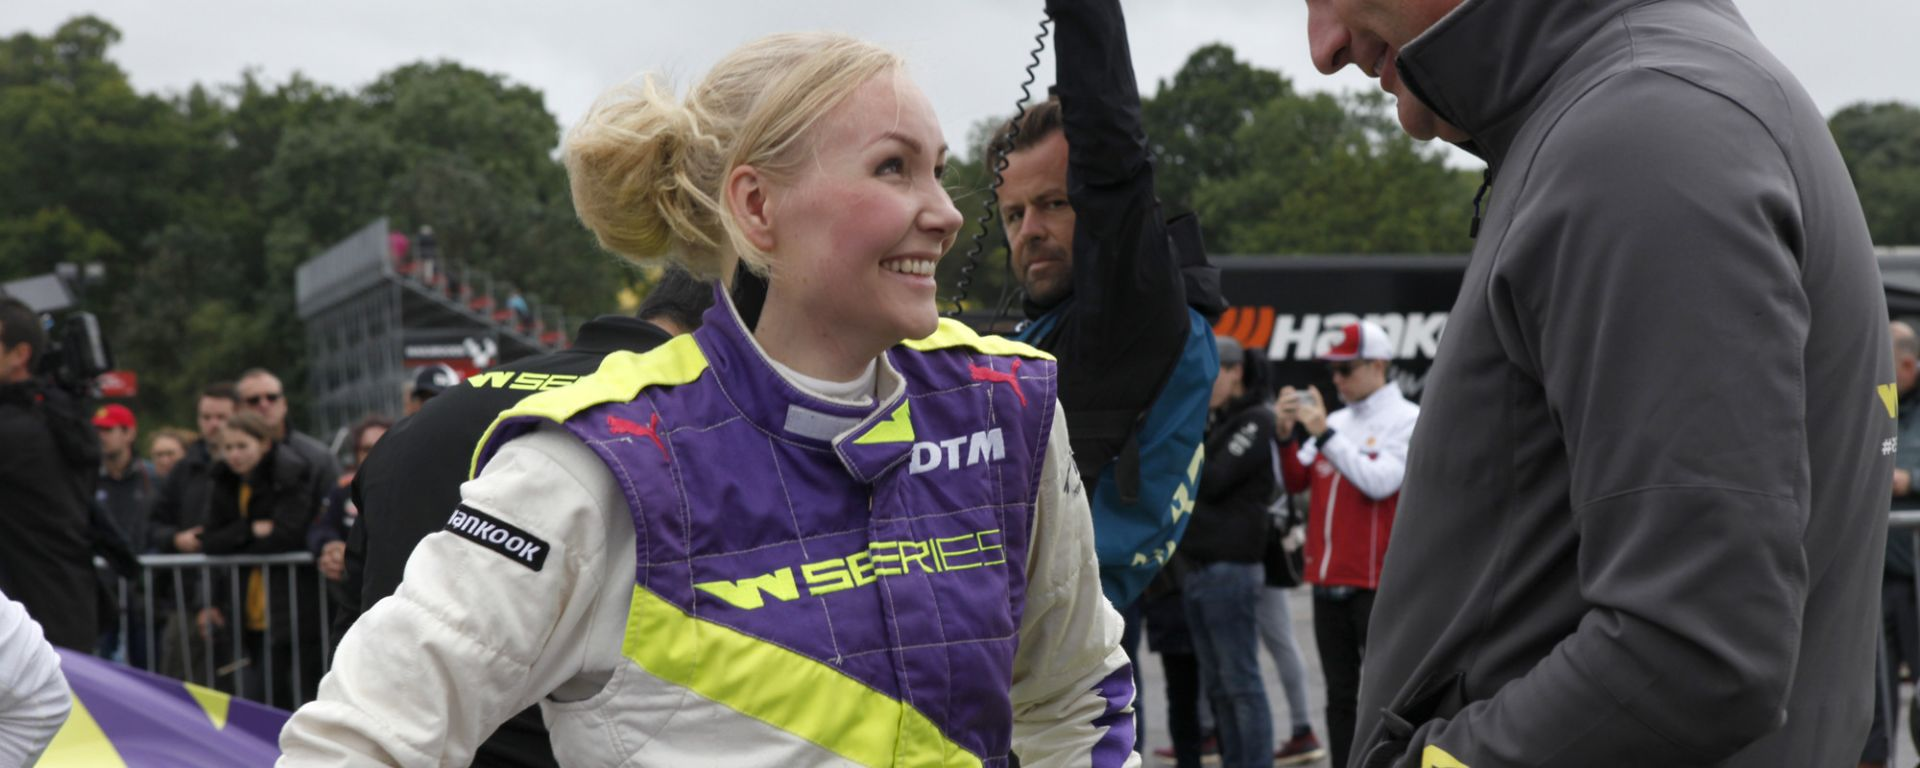 W-Series, Emma Kimilainen in testa nelle FP1 a Brands Hatch